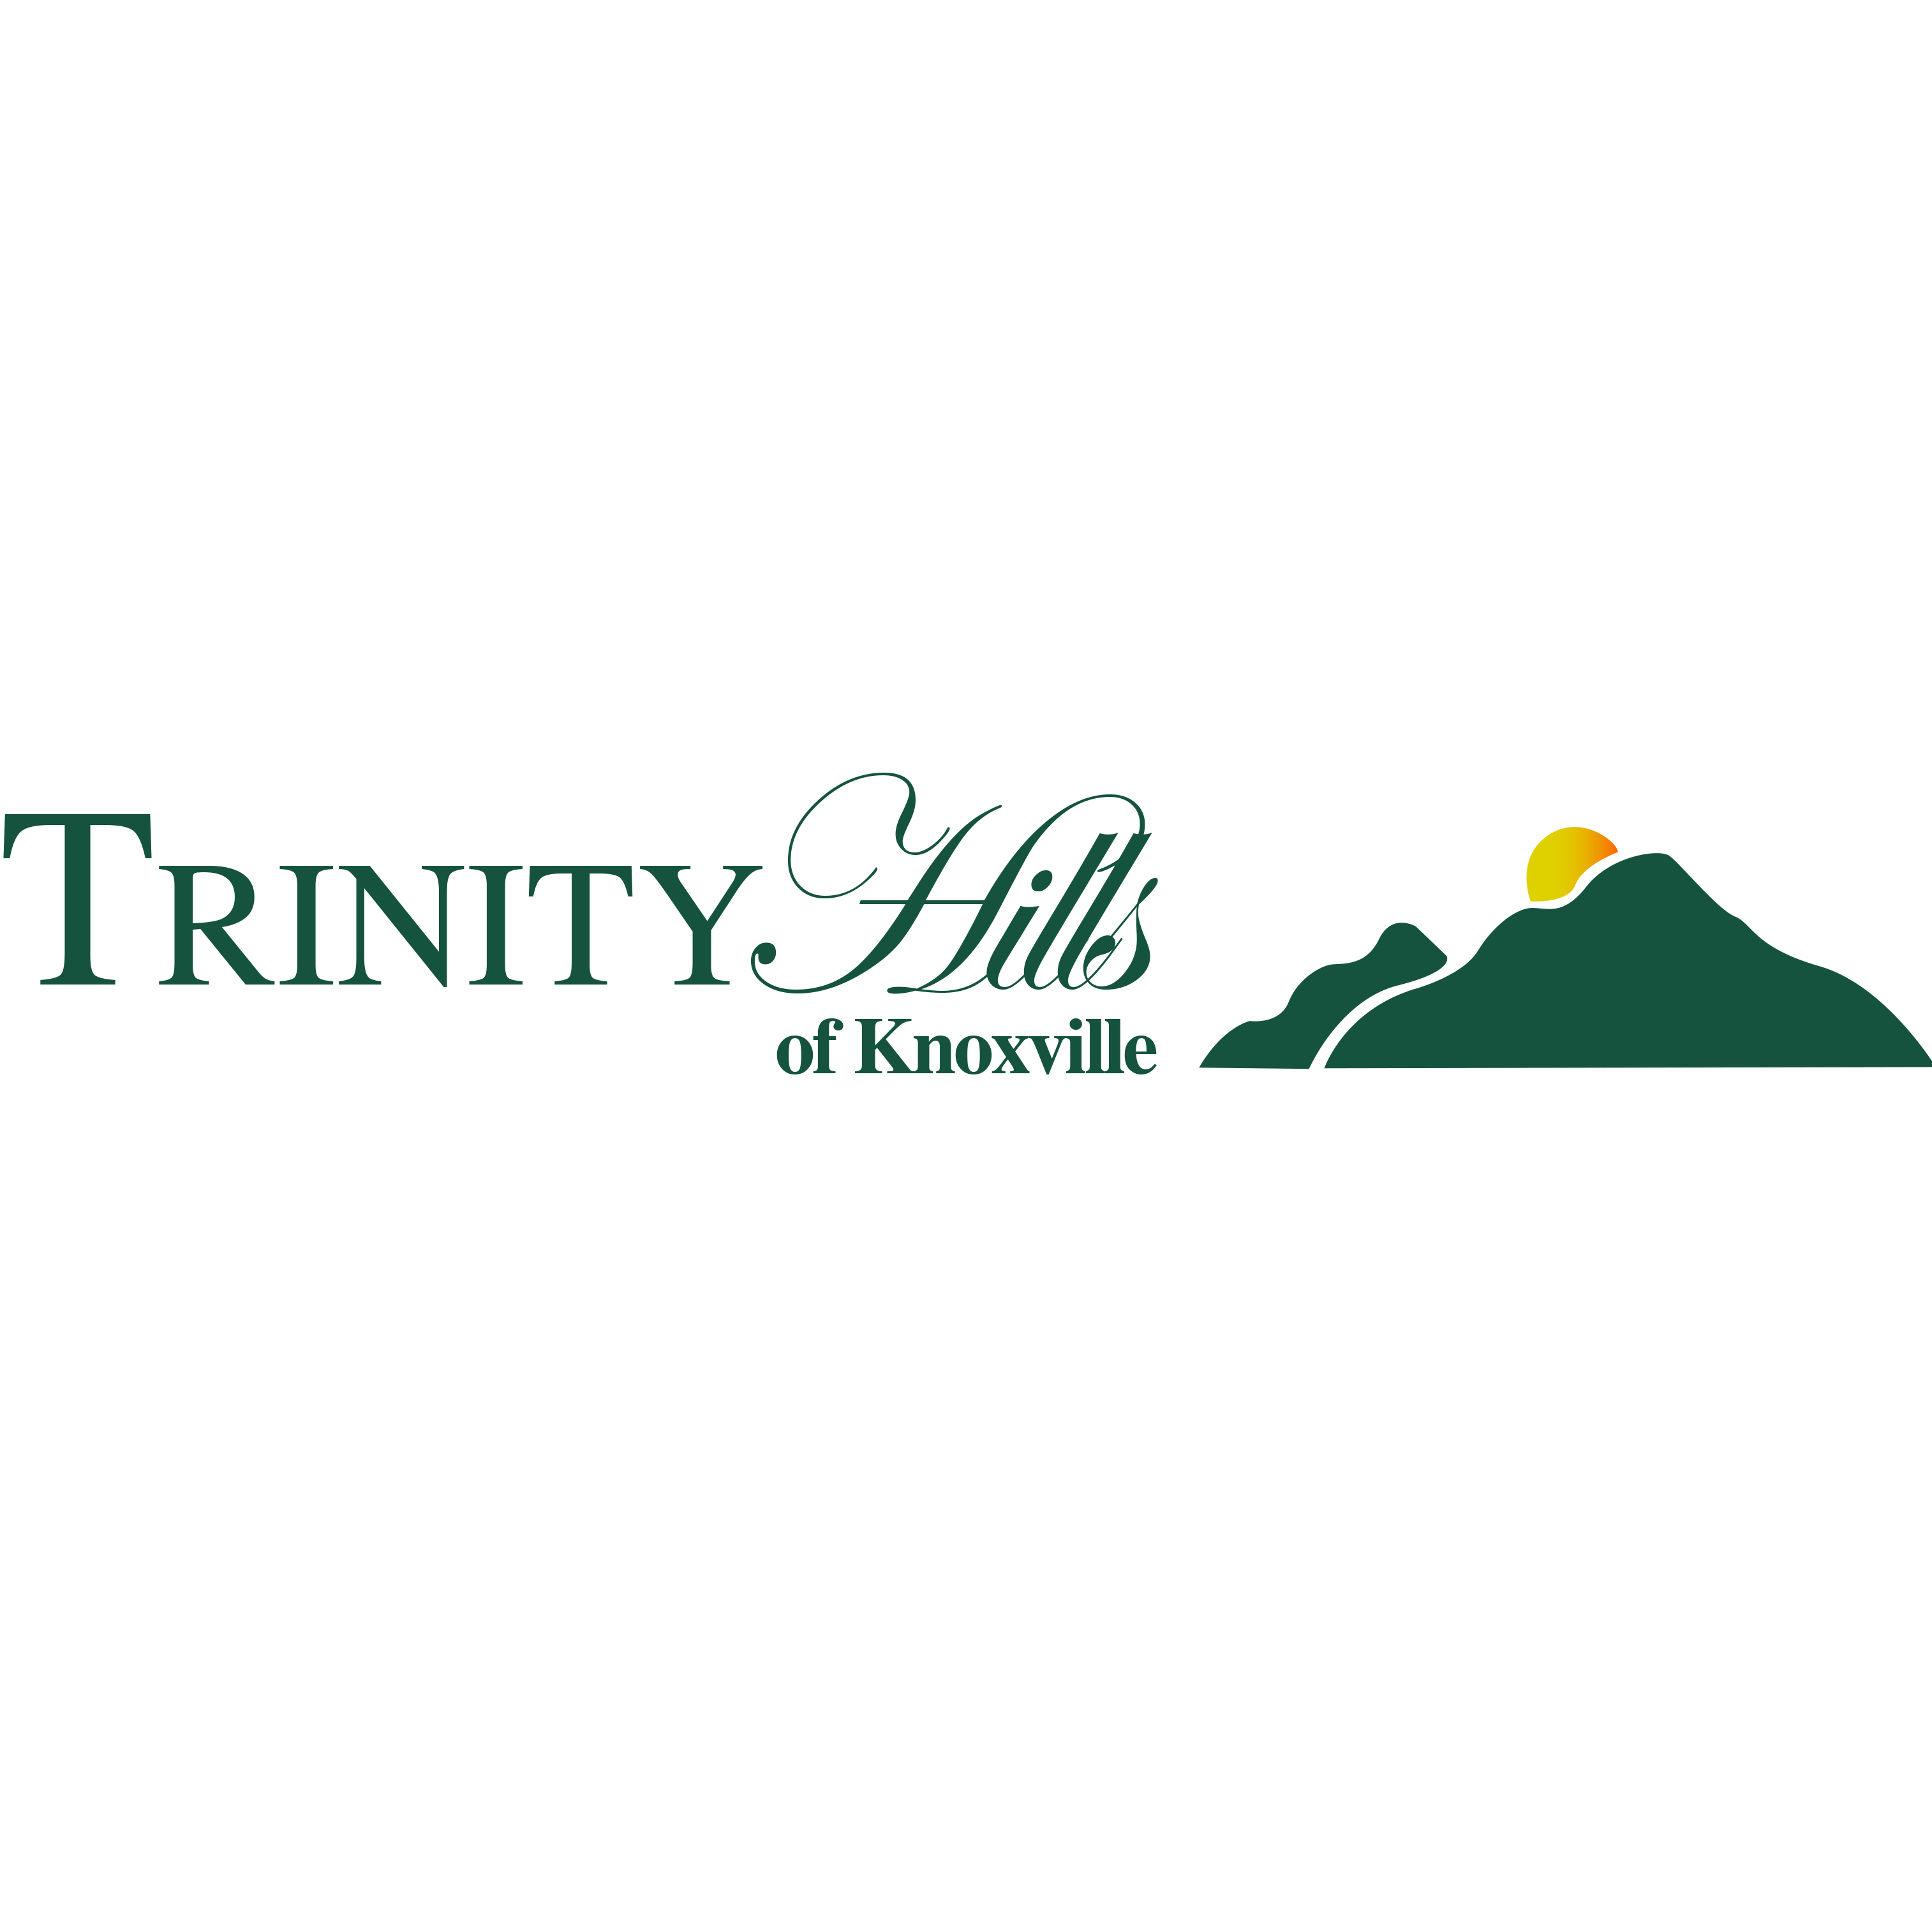 Trinity Hills of Knoxville